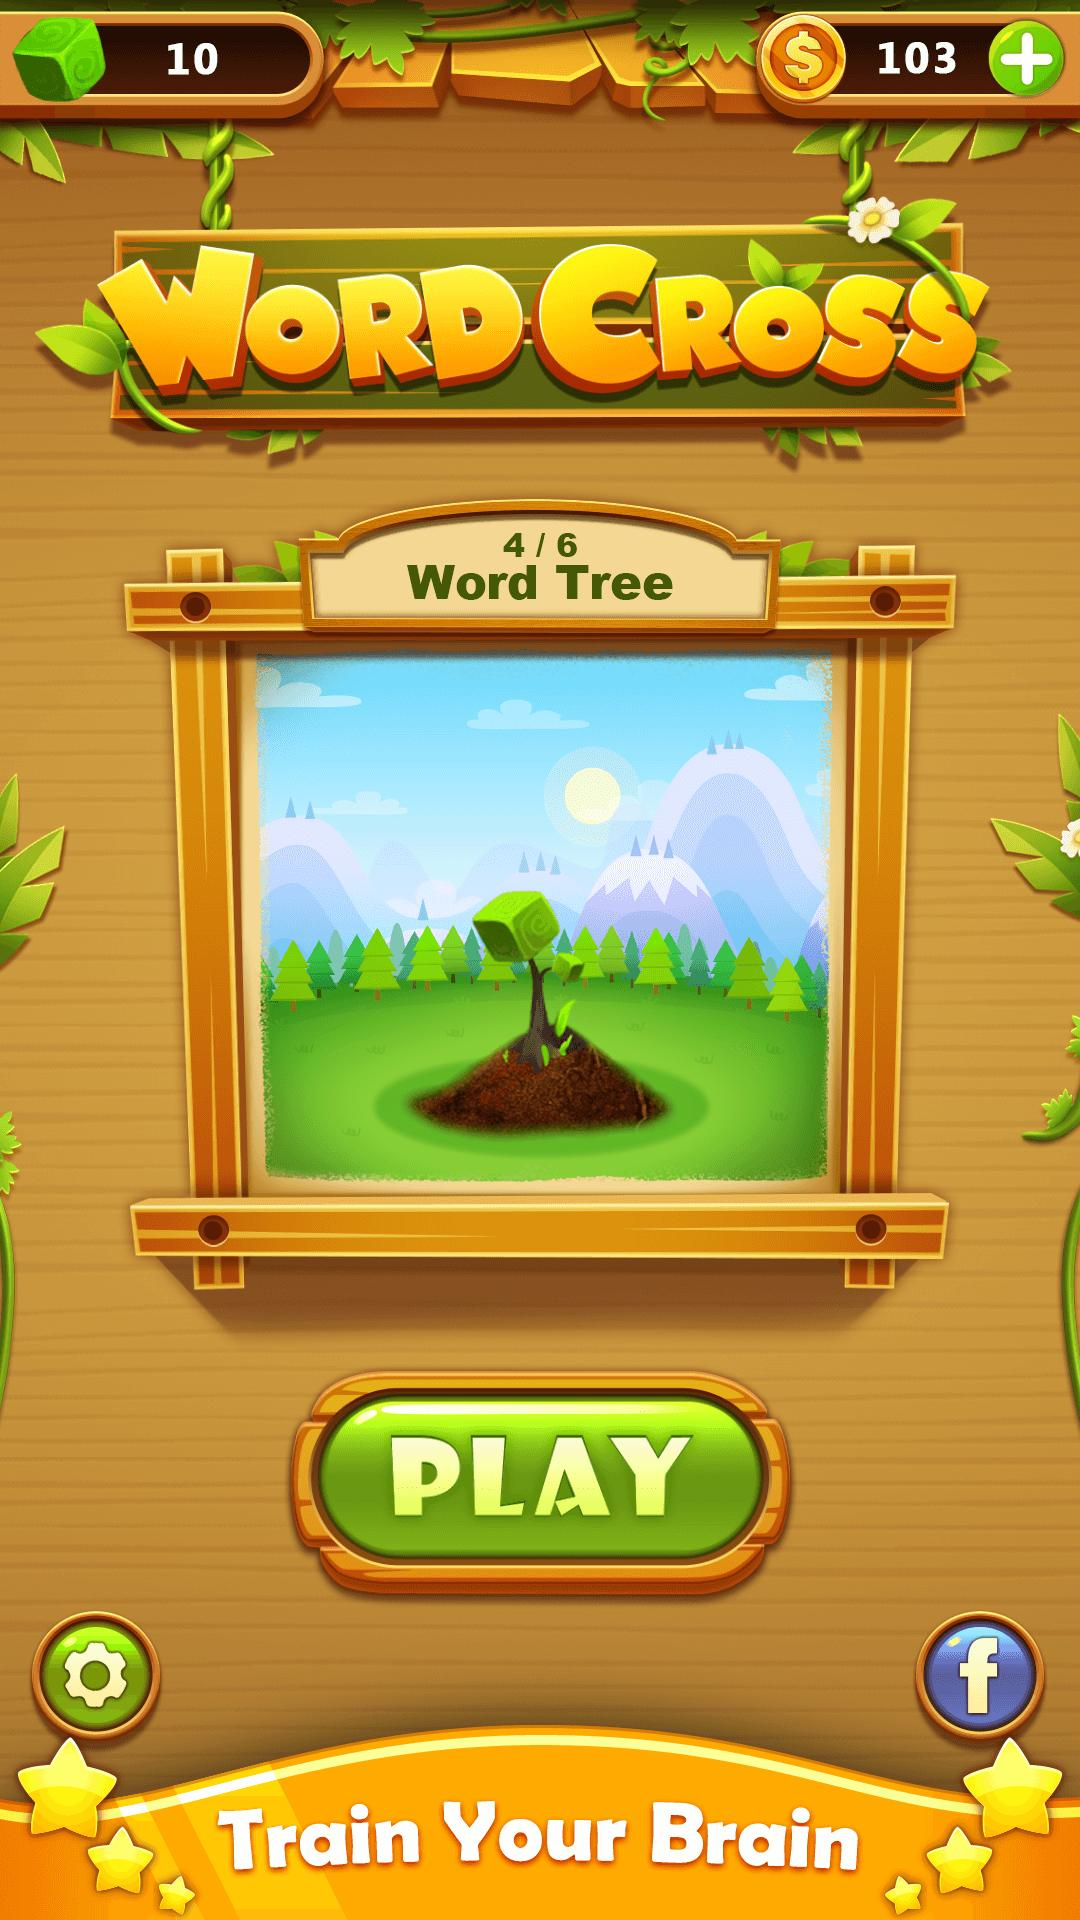 Word Cross Puzzle: Best Free Offline Word Games for Android